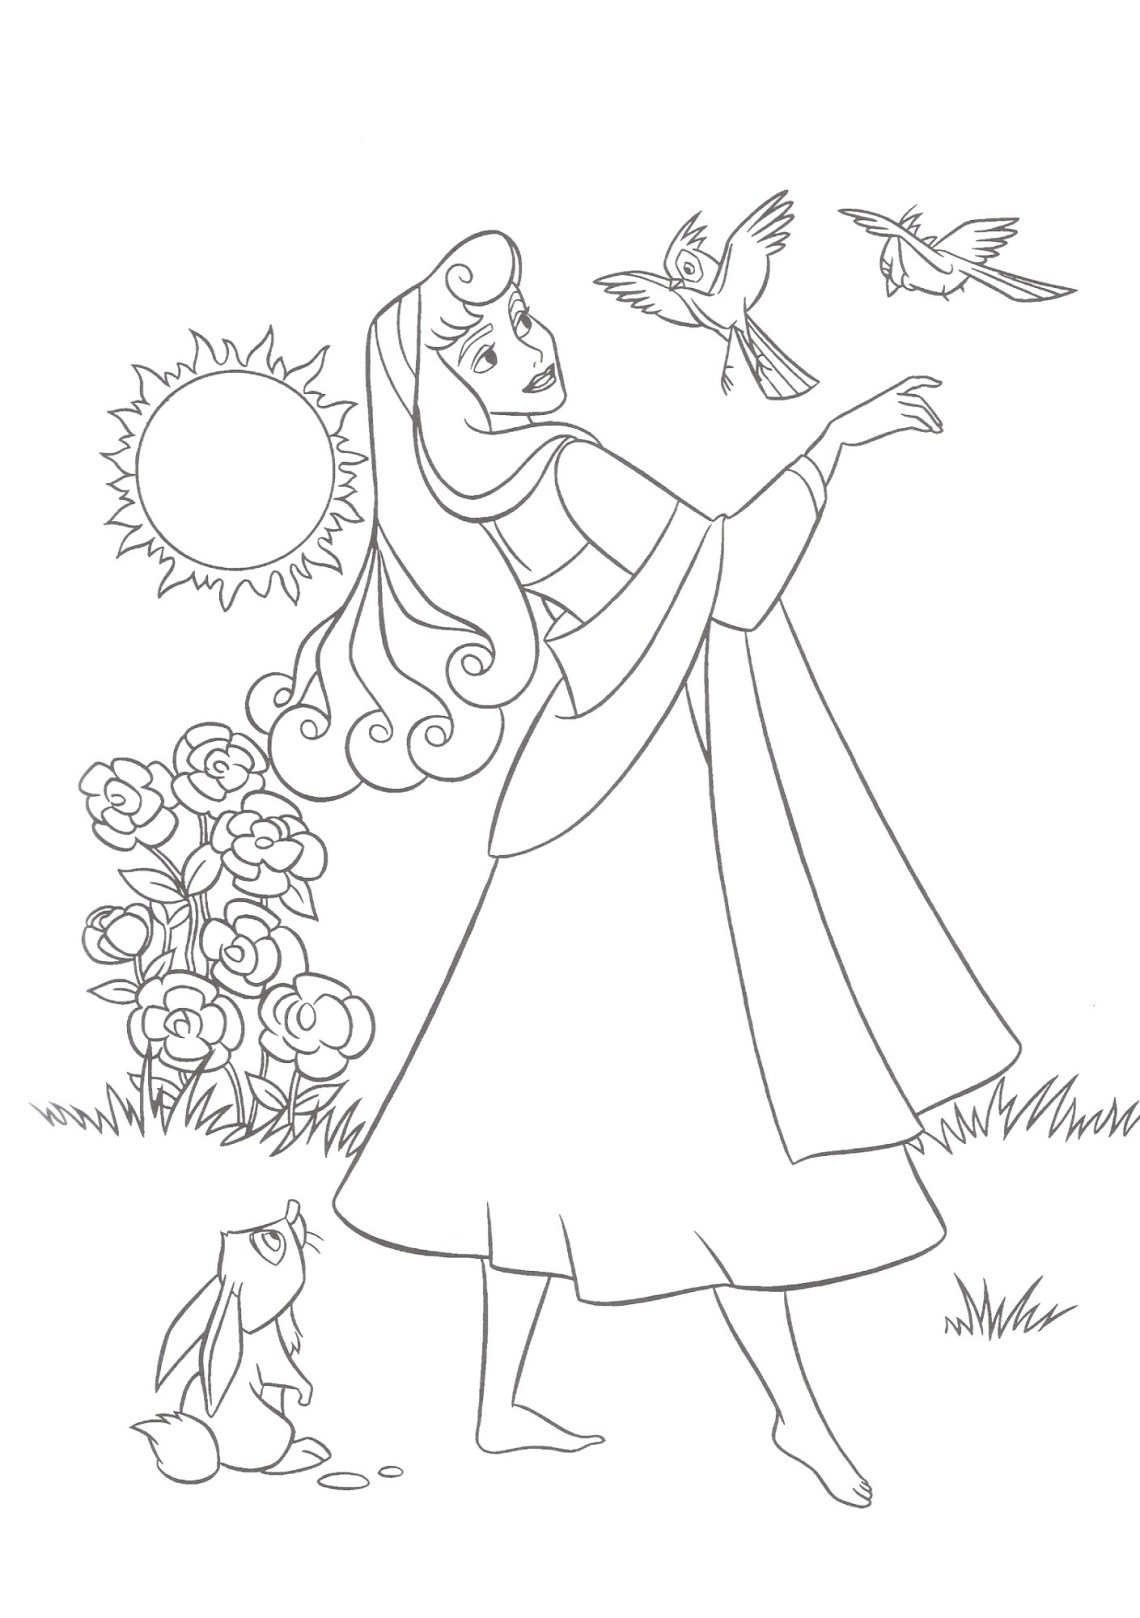 Free Printable Sleeping Beauty Coloring Pages For Kids | coloring pages for childrens